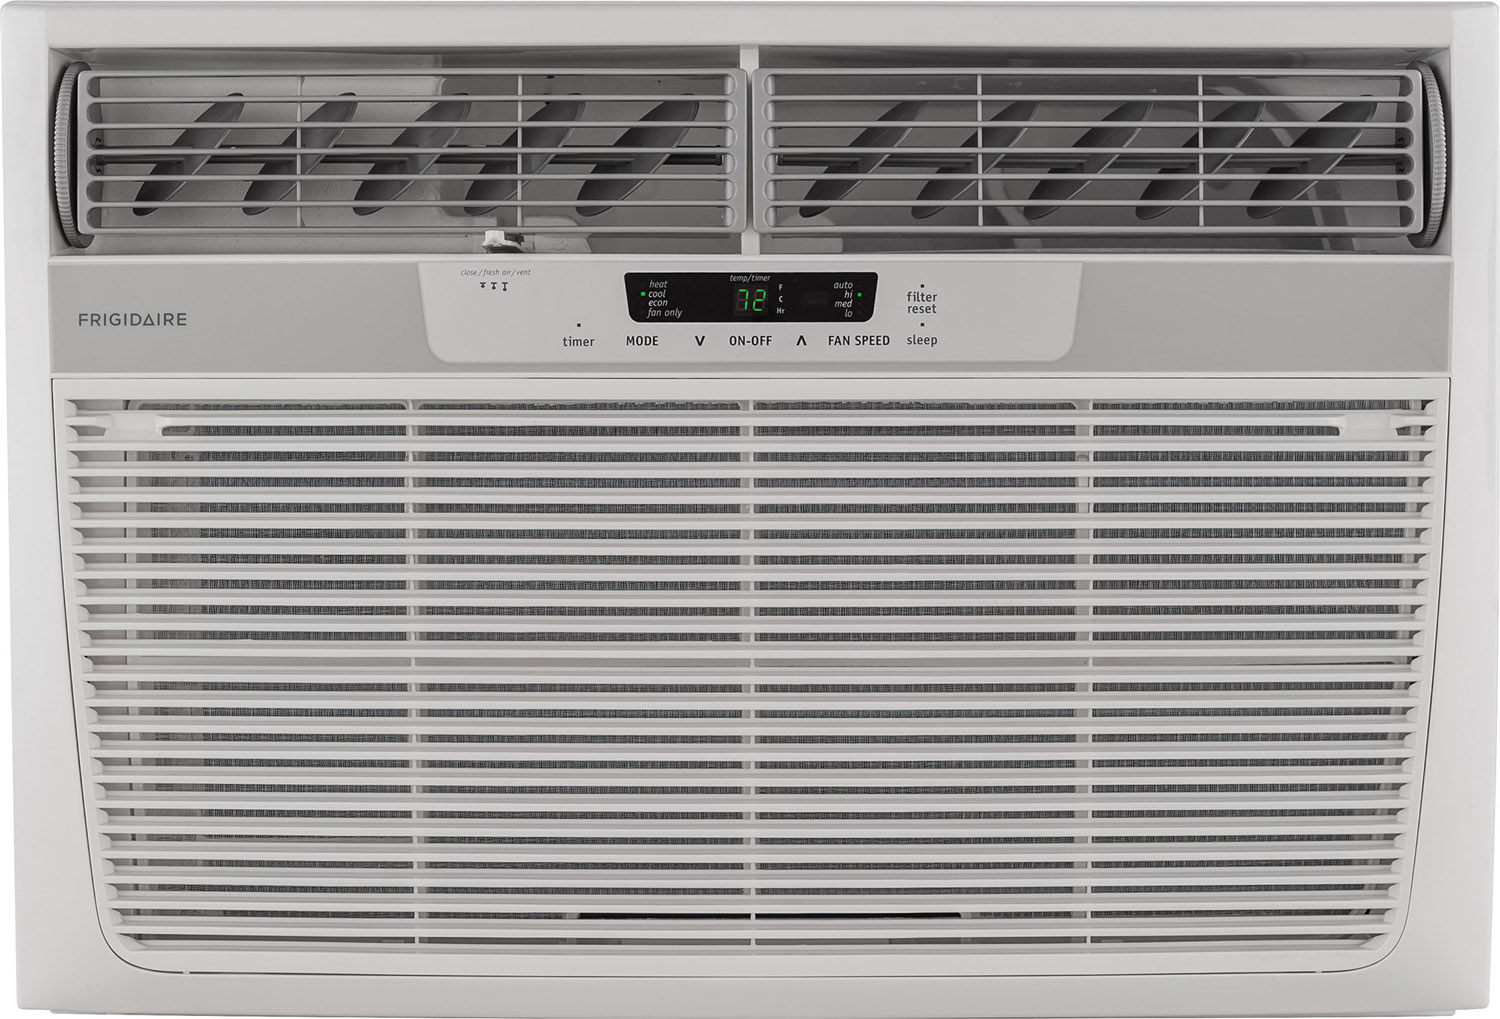 Frigidaire 25,000 BTU 9.4 EER 230V Window Air Conditioner